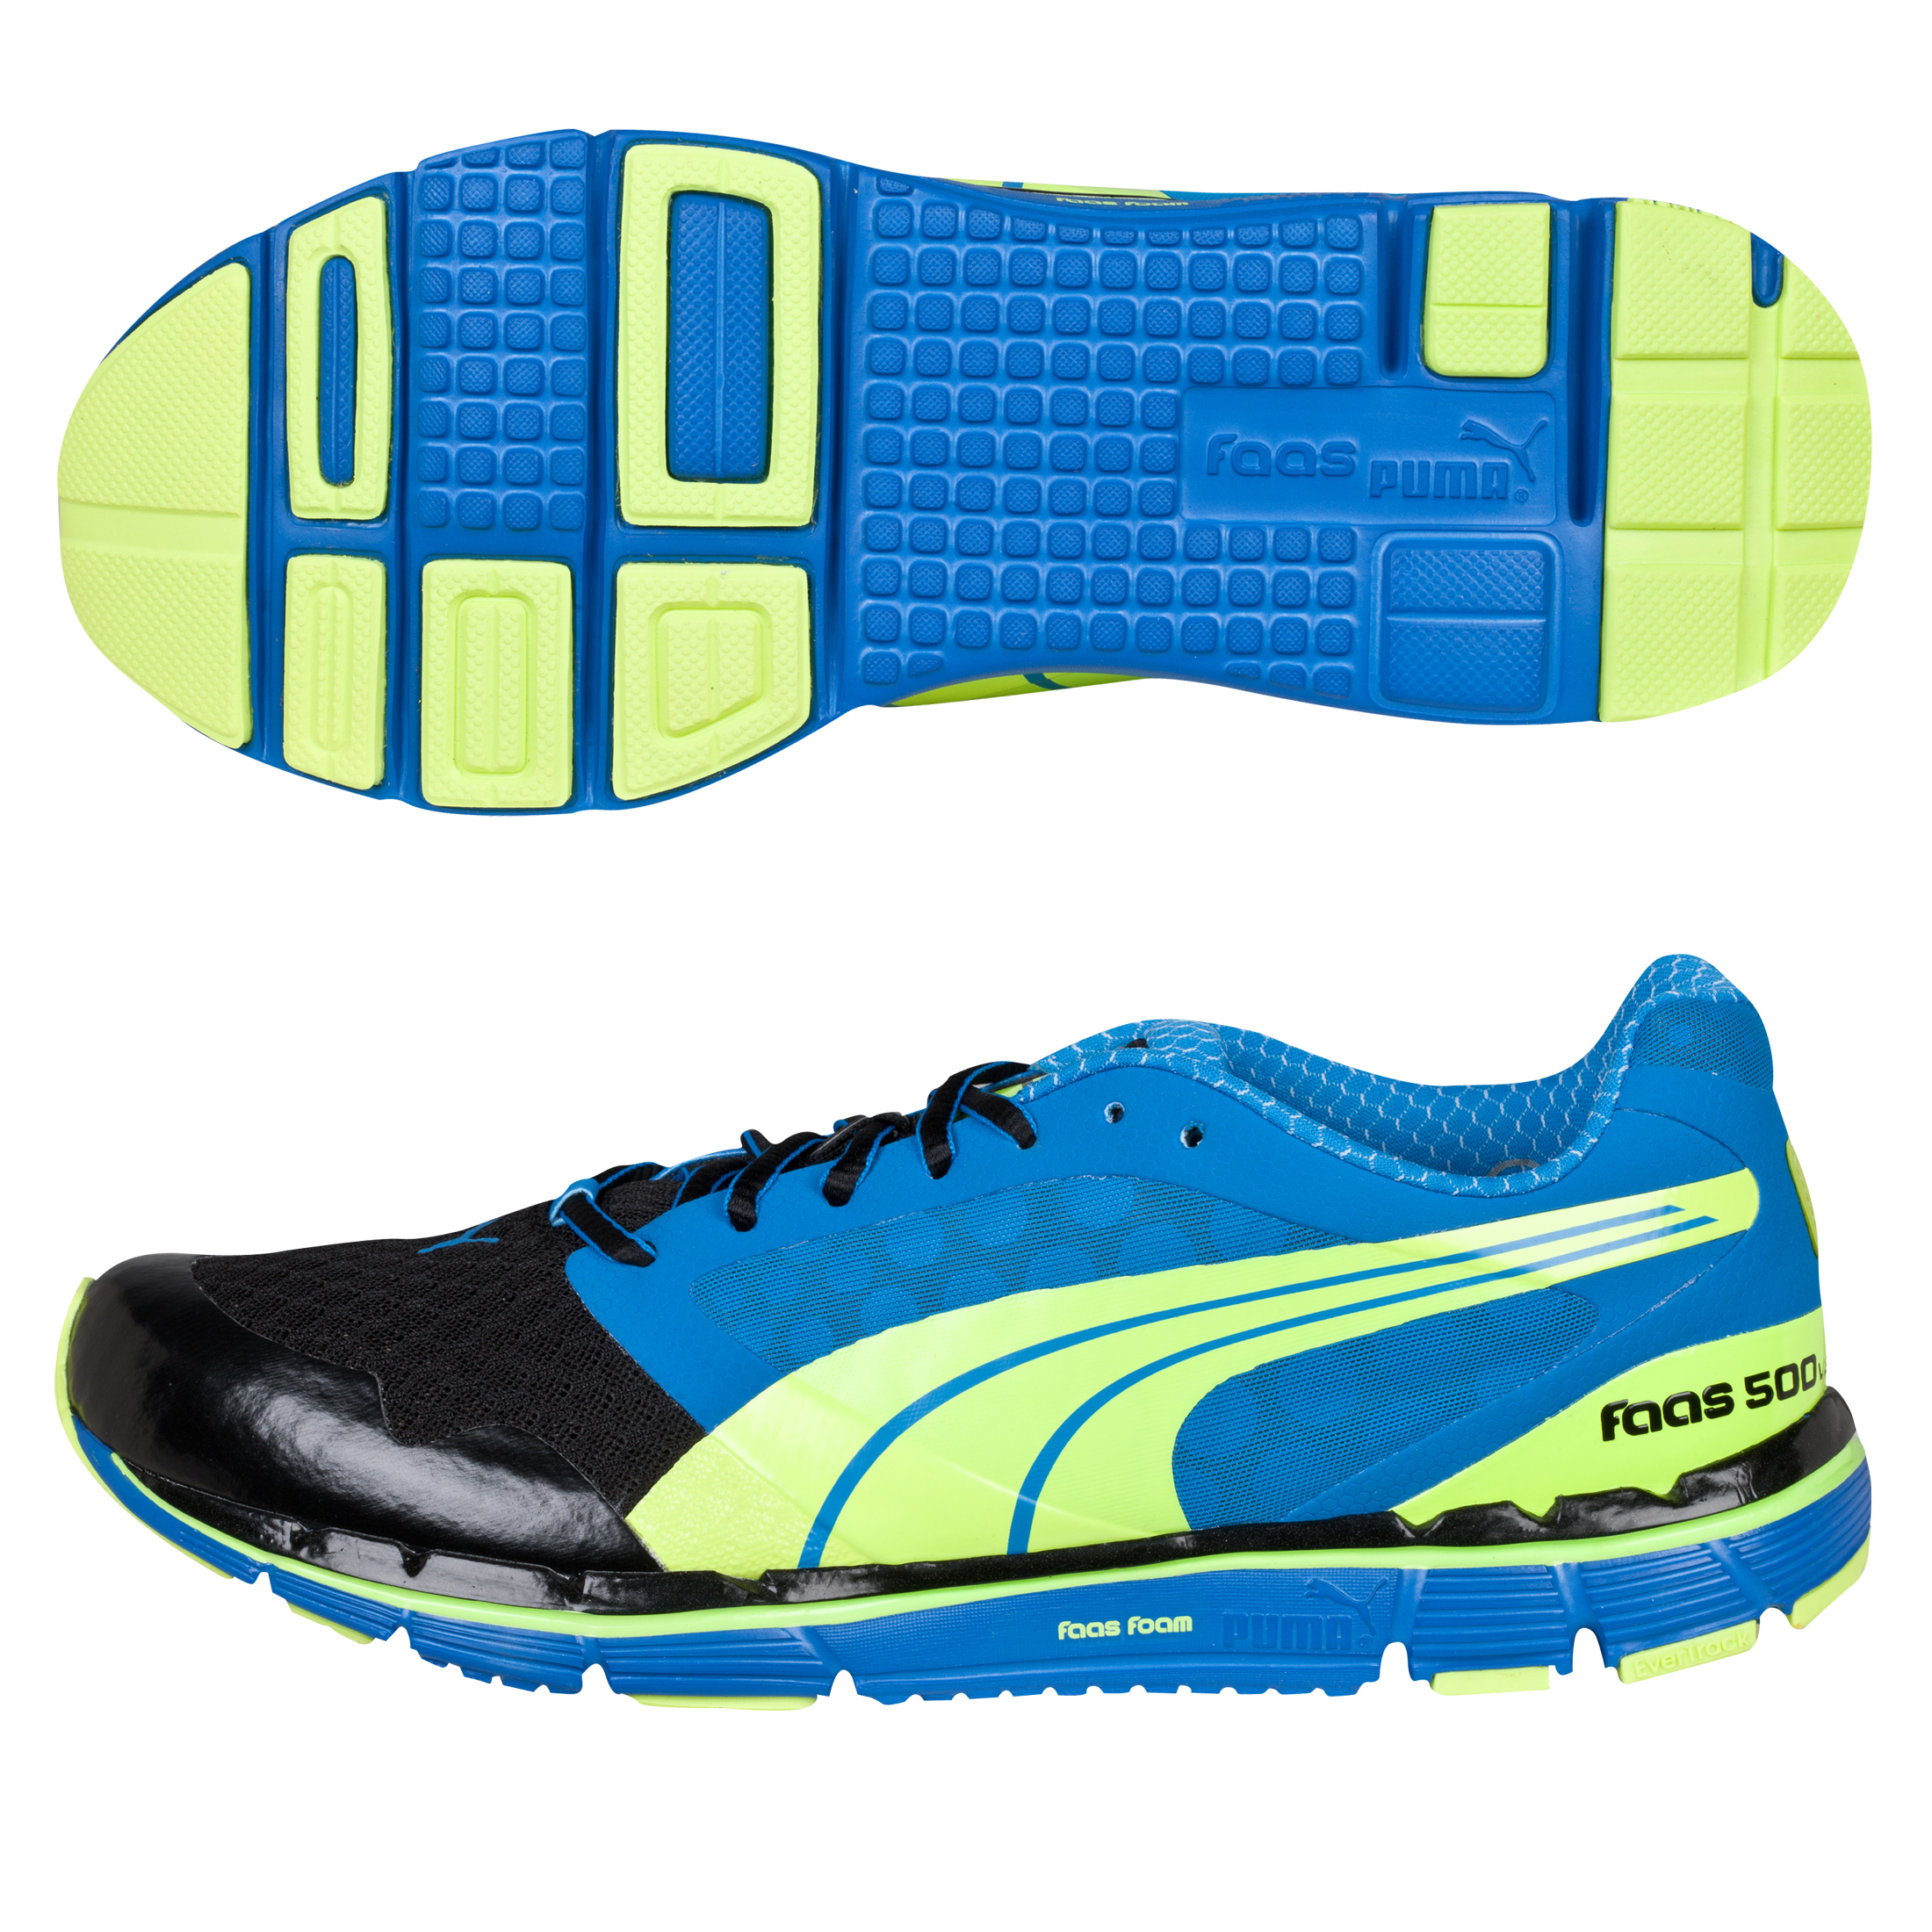 Running Puma Faas 500 v2 Trainer - Blue-Black/Fluo Yellow Blue